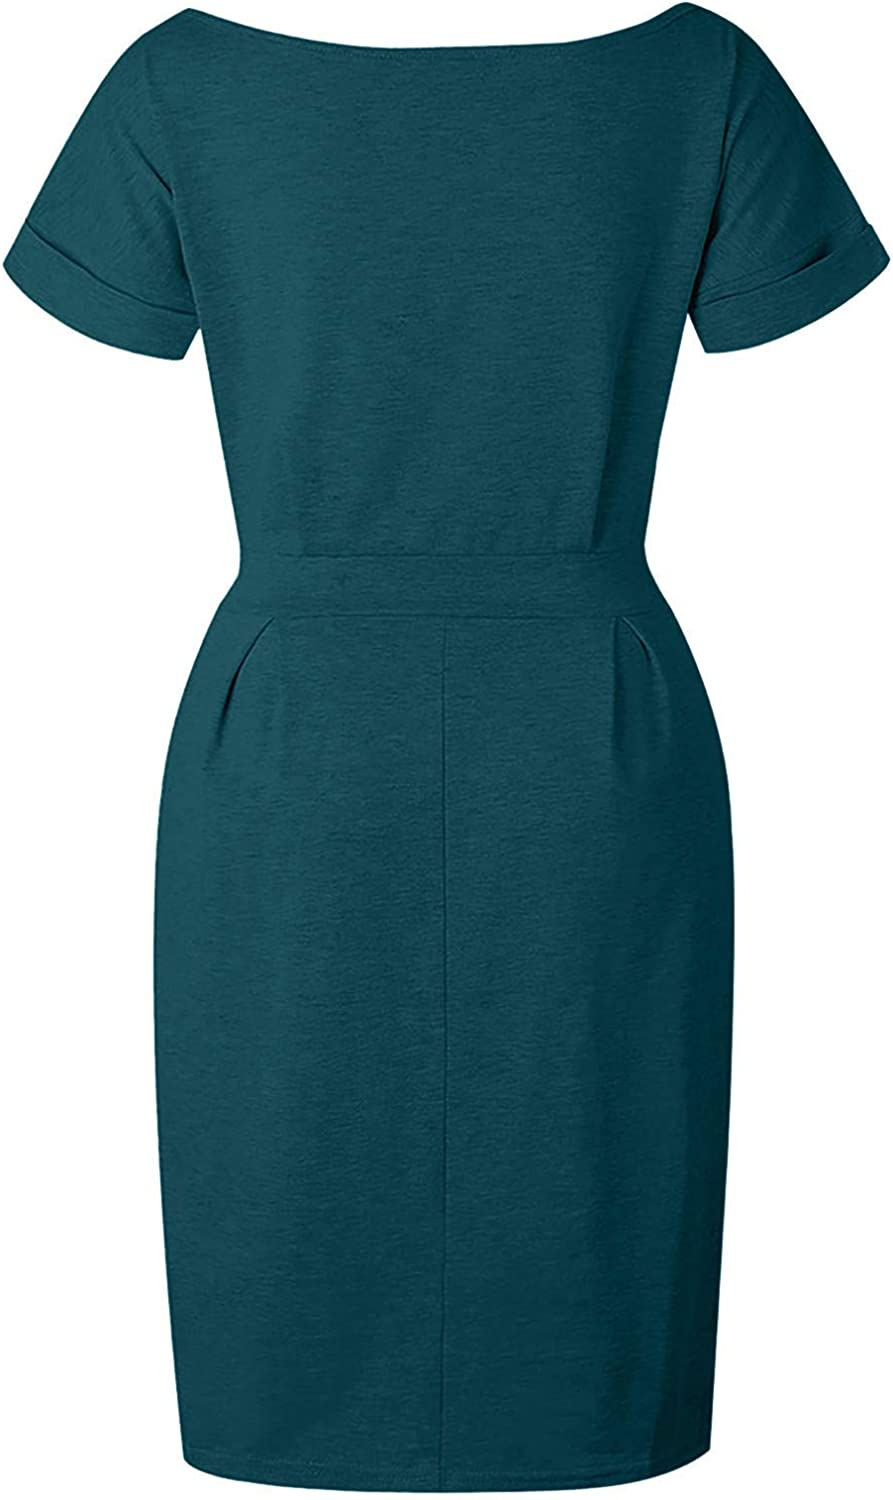 WYTong Womens Basic Crewneck Belted Office Dress with Pockets Solid Color Sexy Short Sleeve Party Slim Dress